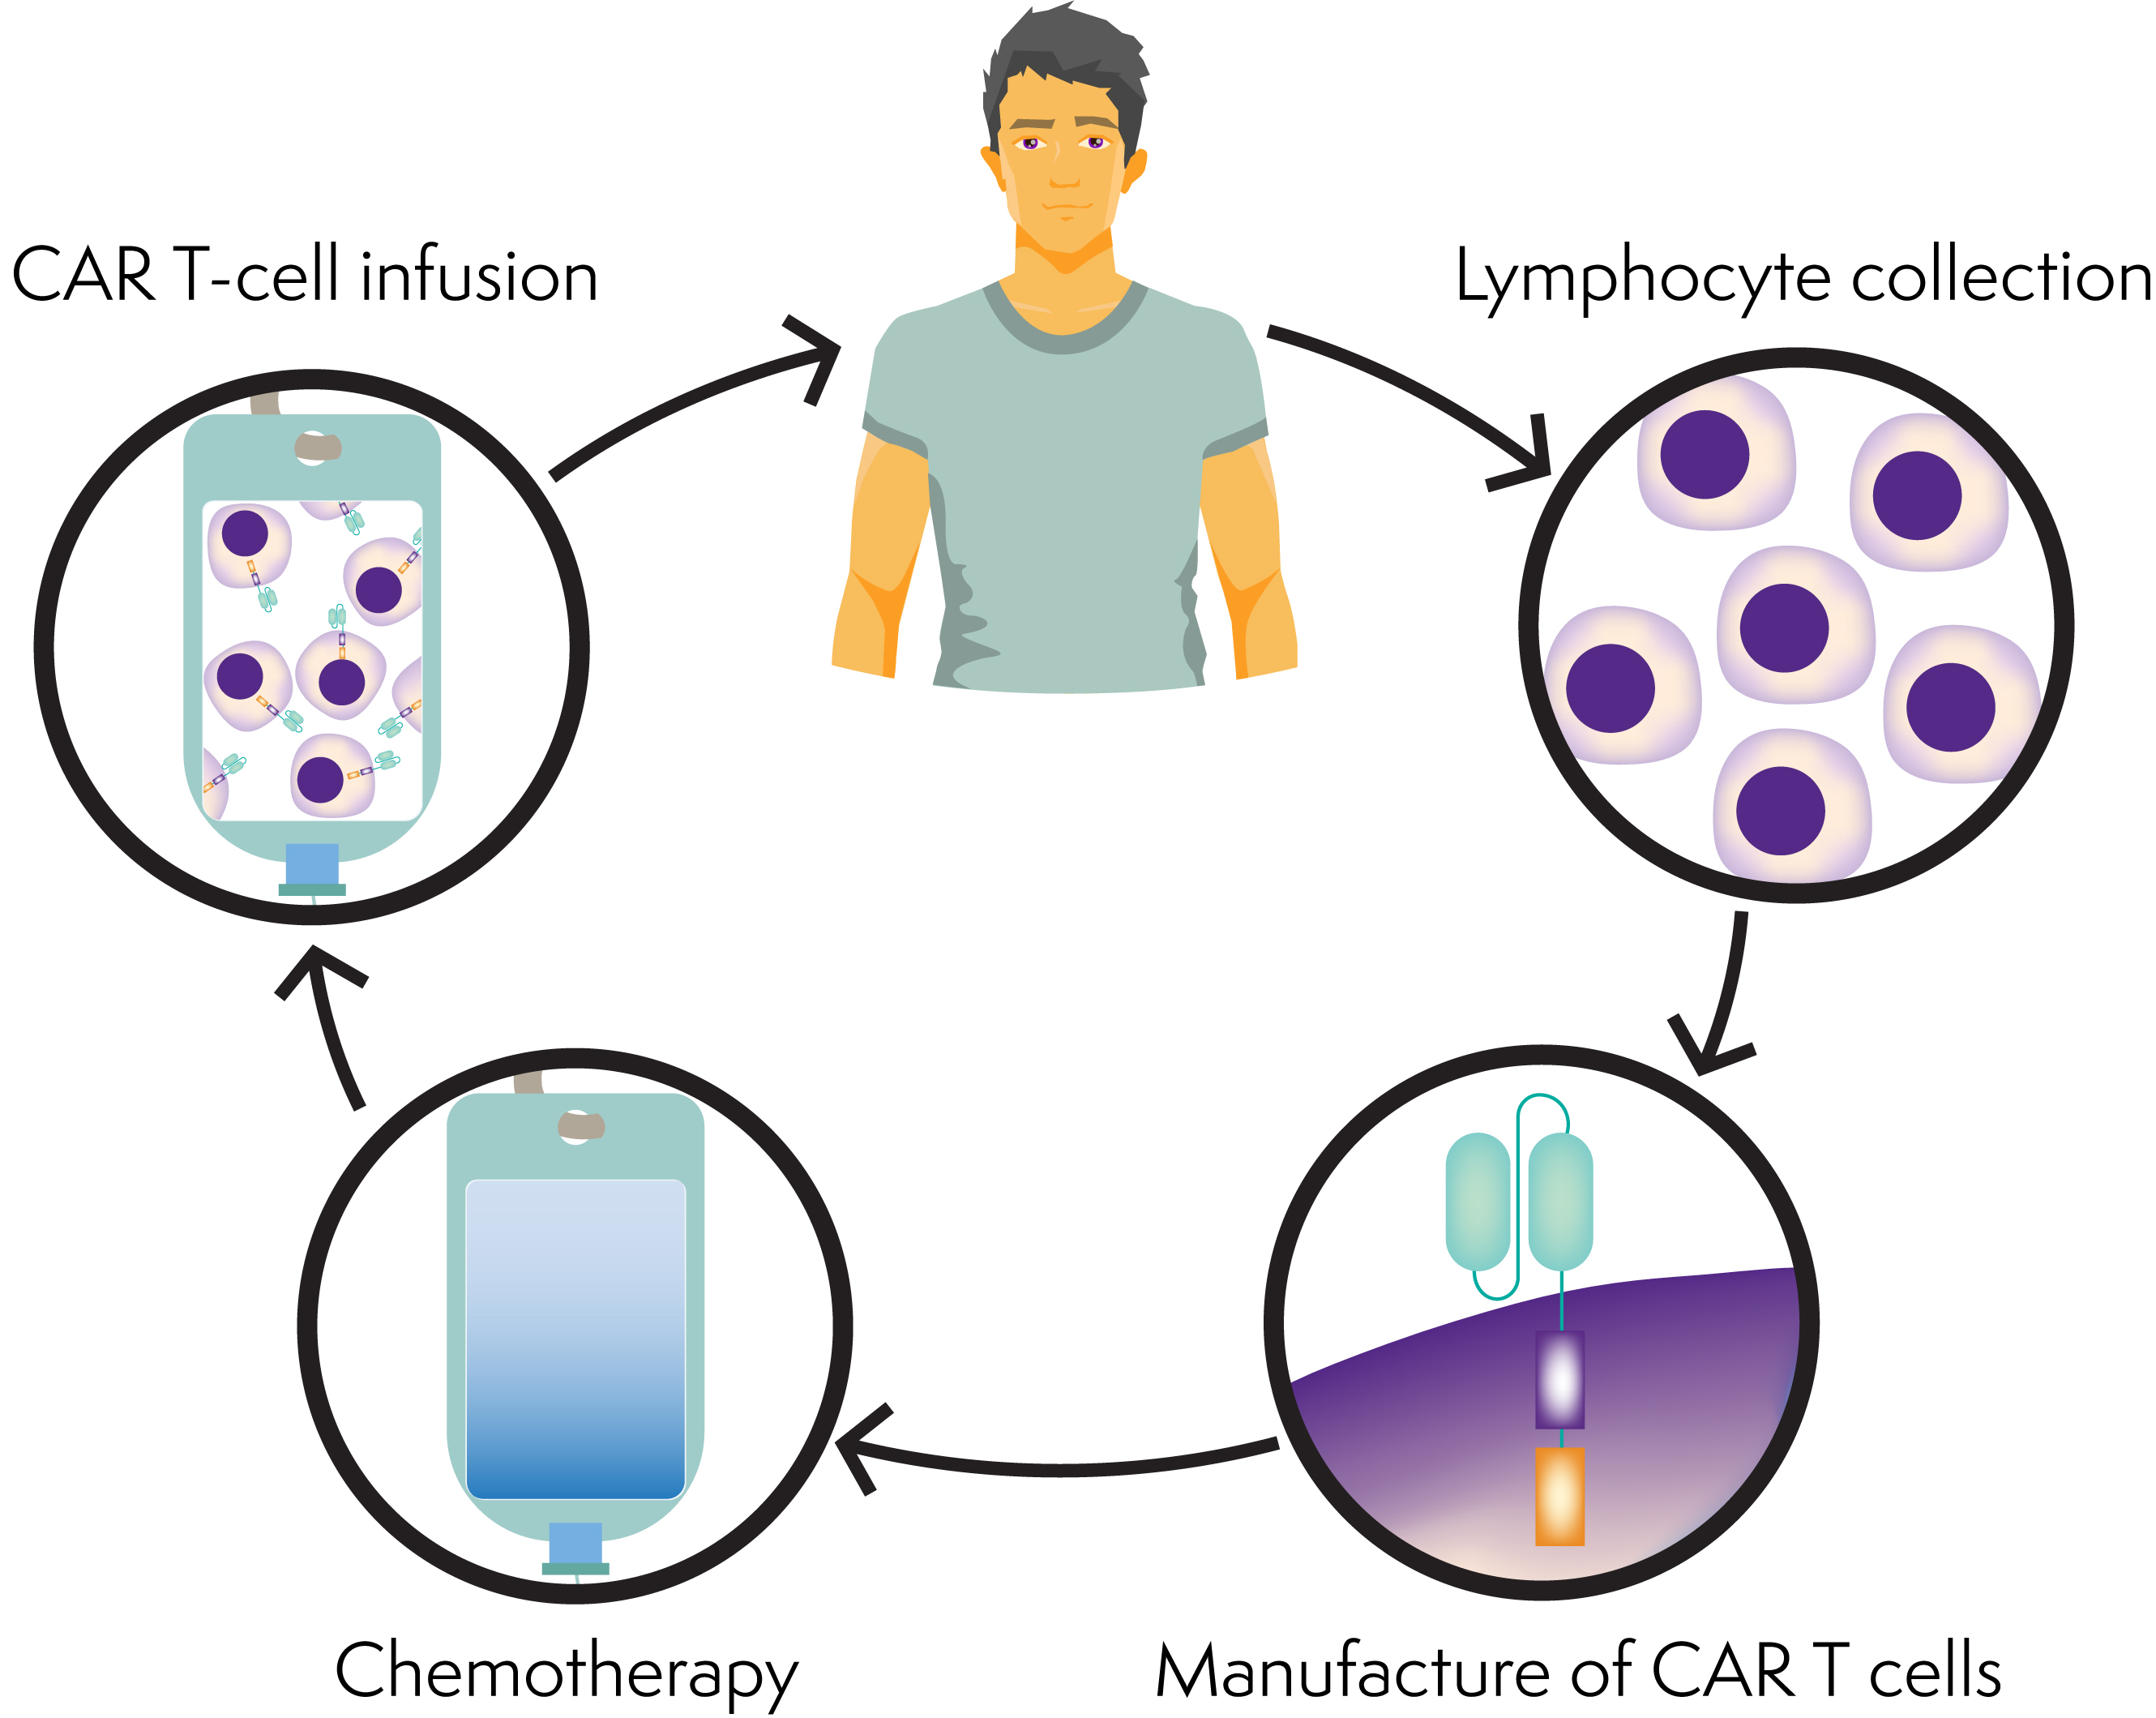 Diagram showing the CAR T cell process: lymphocyte collection, manufacture of CAR T cells, chemotherapy, and CAR T-cell infusion